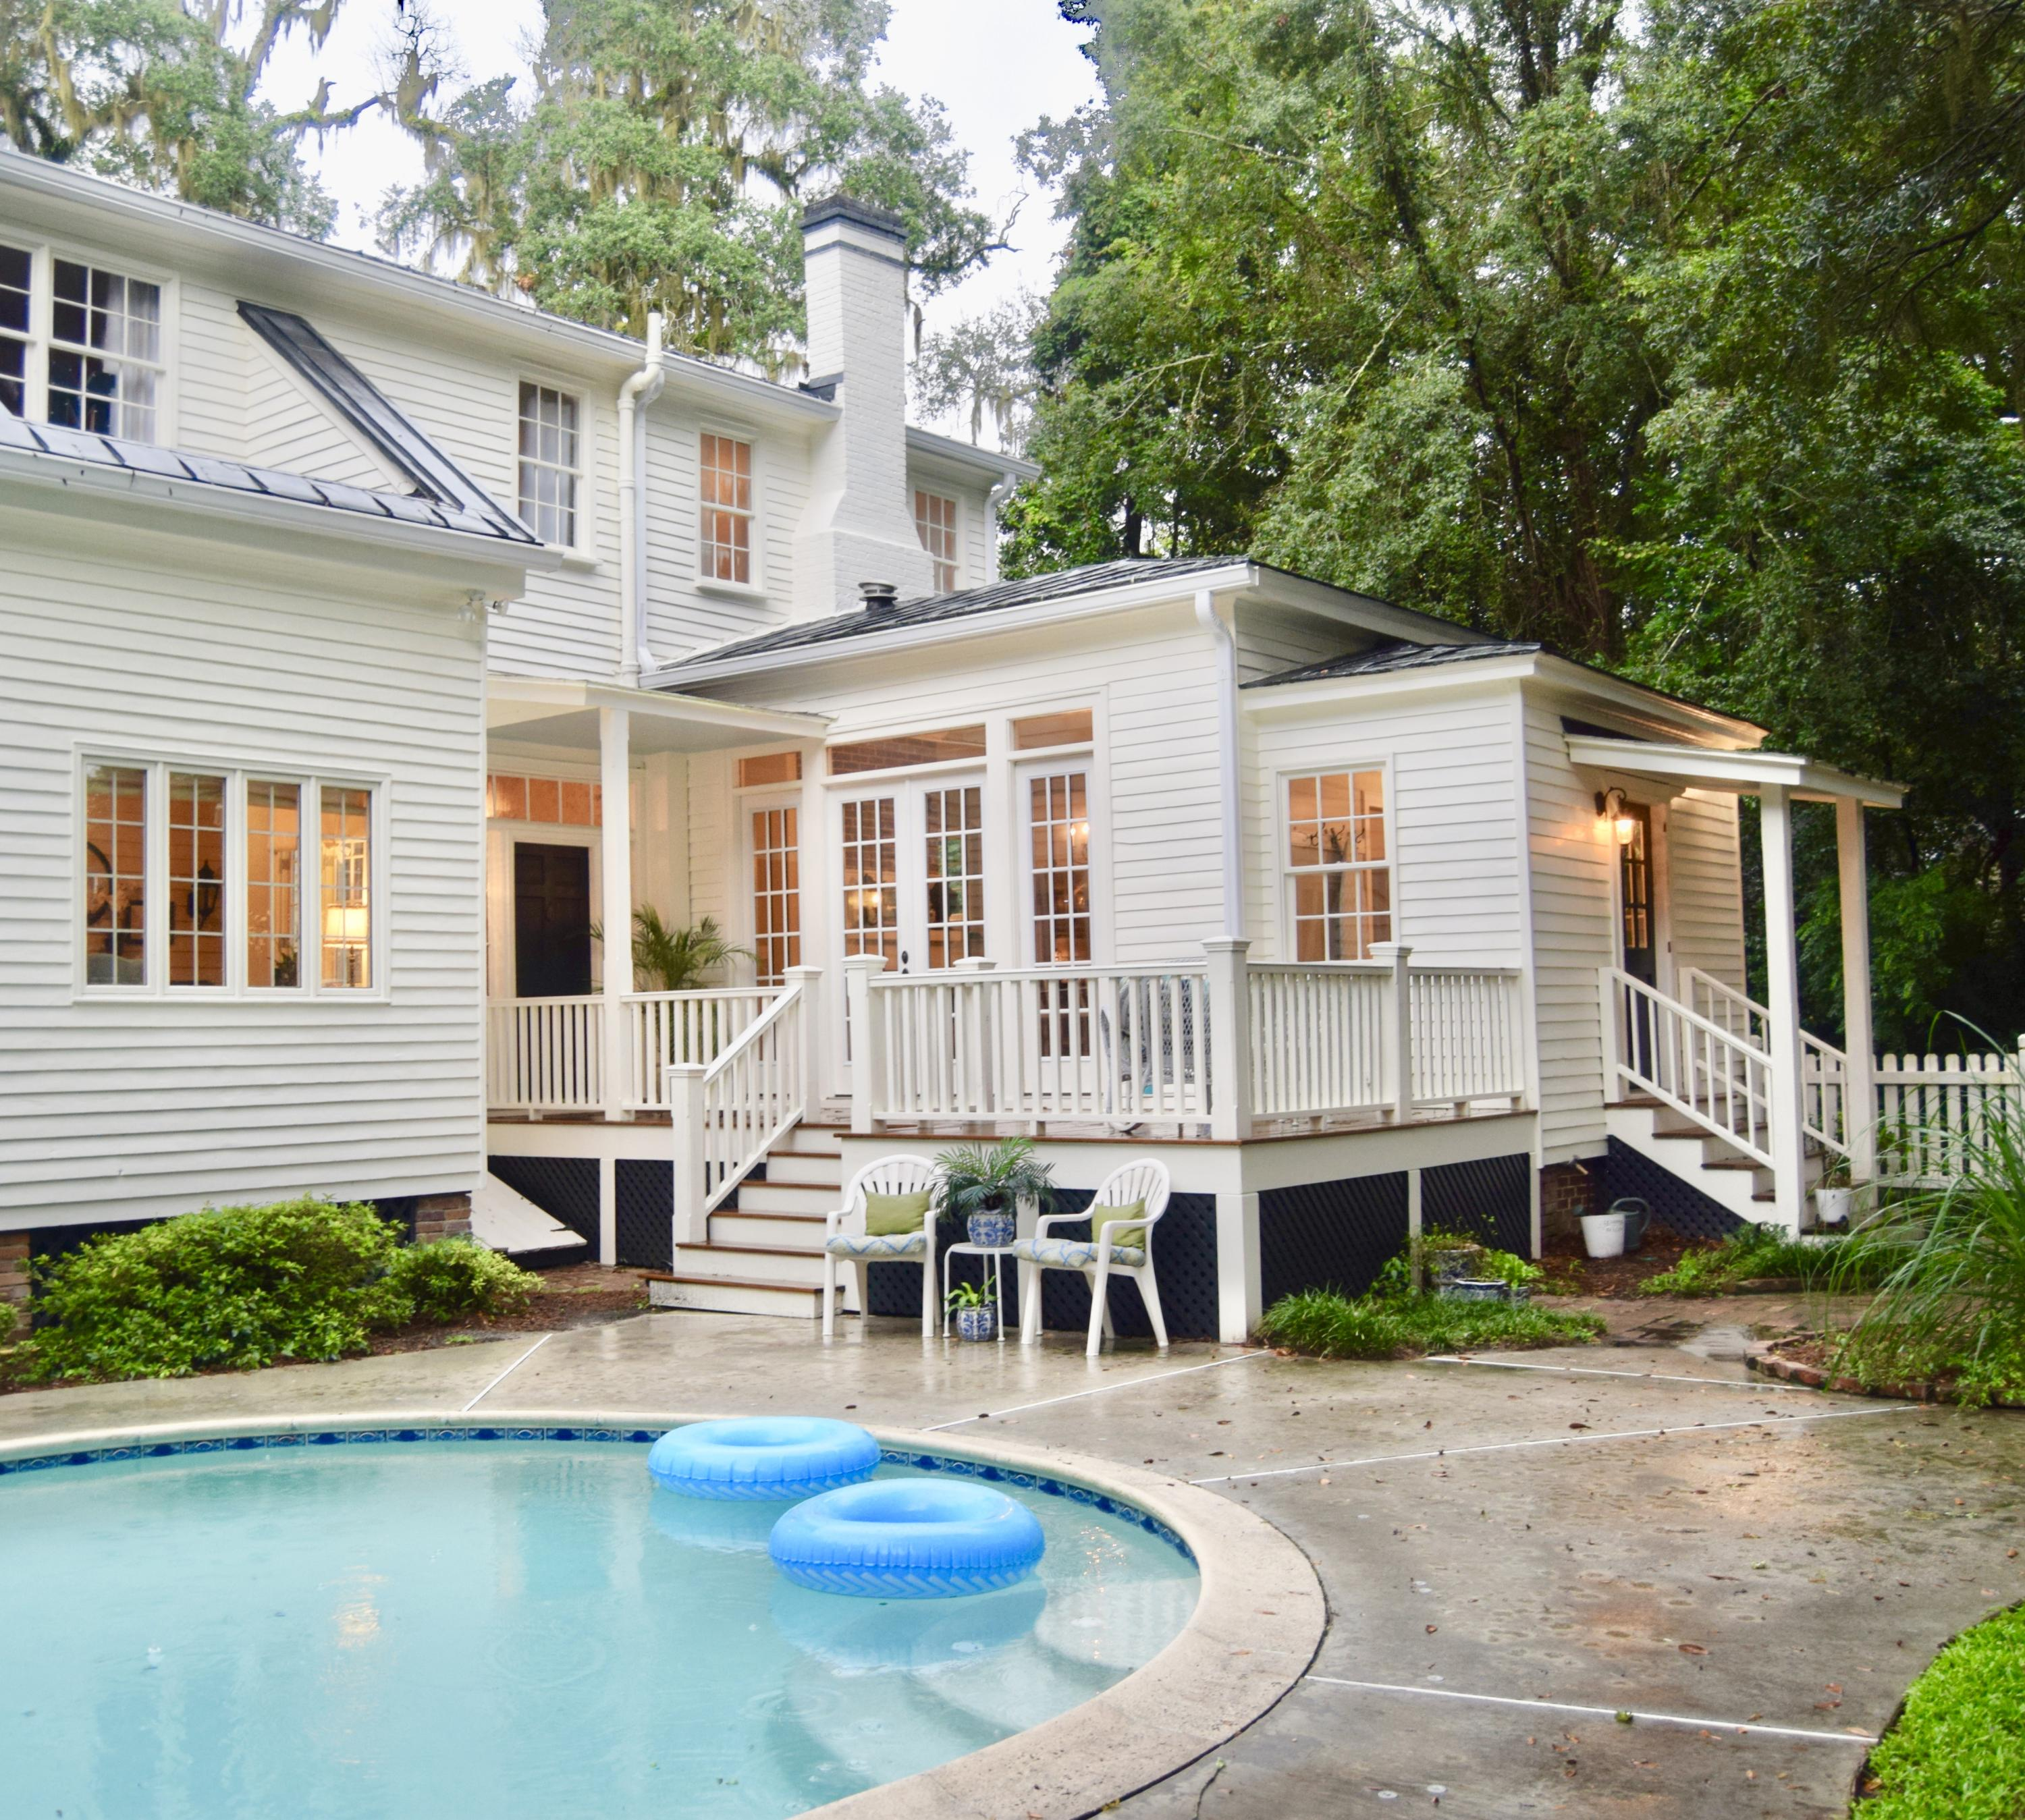 Historic District Homes For Sale - 115 Briarwood, Summerville, SC - 34